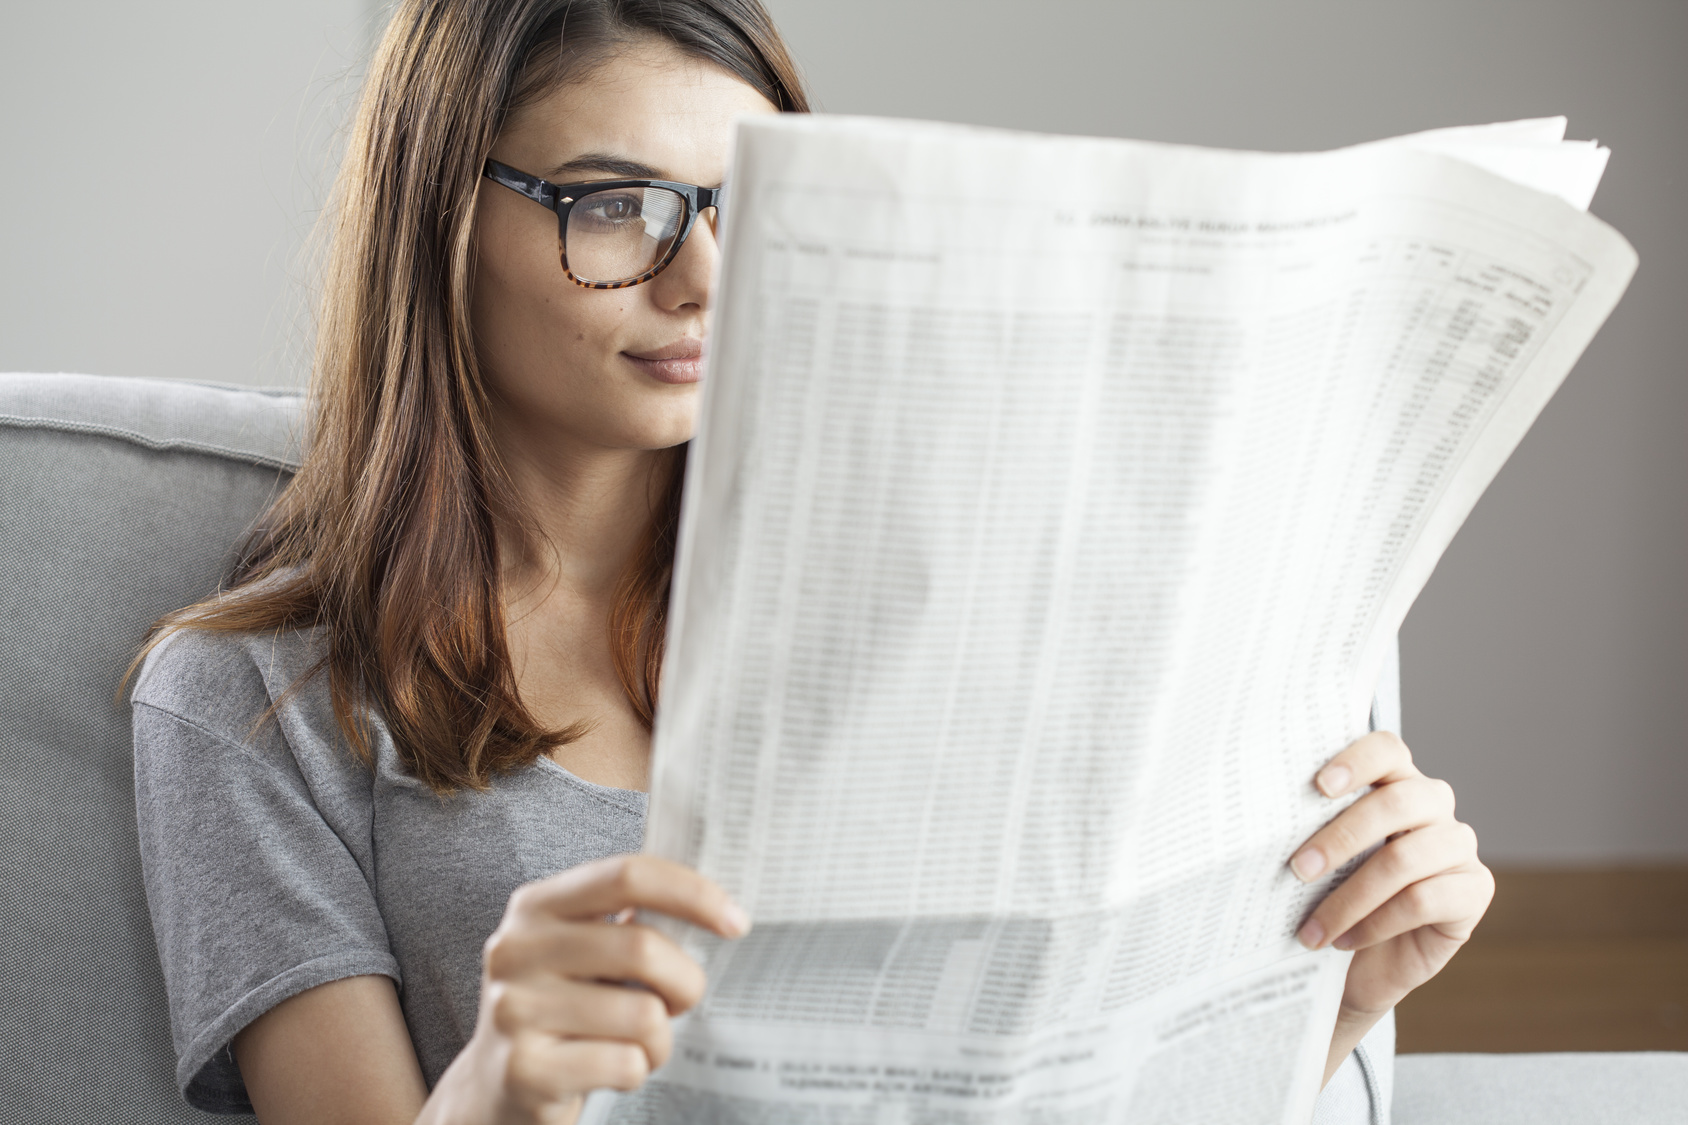 Fotolia_123889625_Young-woman-reading-newspaper_M